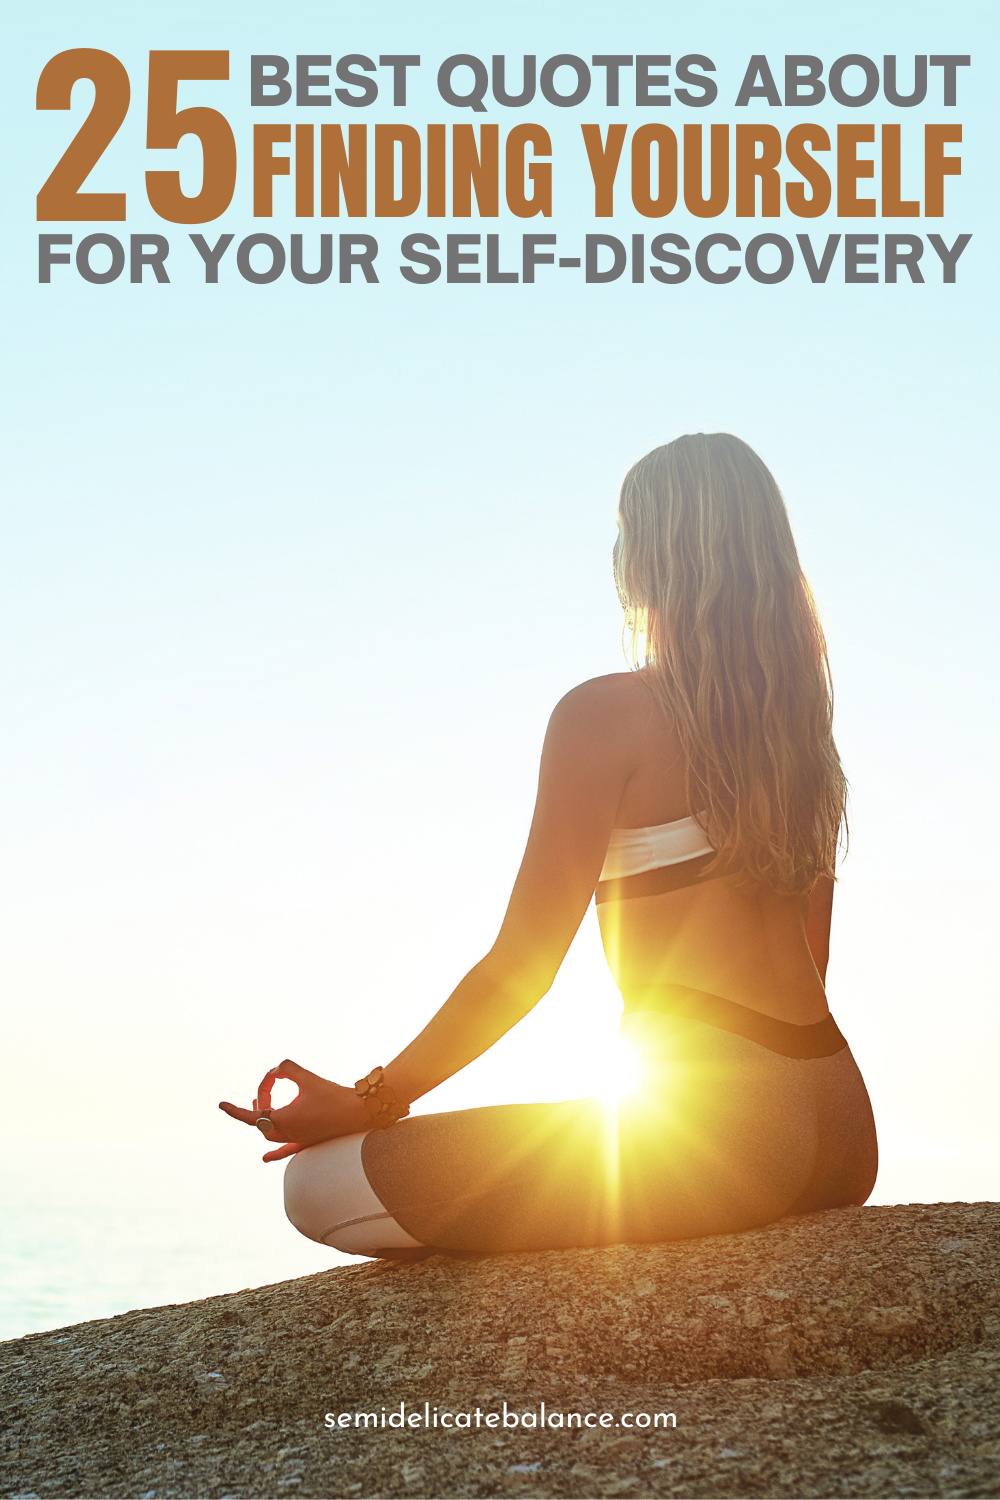 Best Quotes About Finding Yourself For Self-Discovery